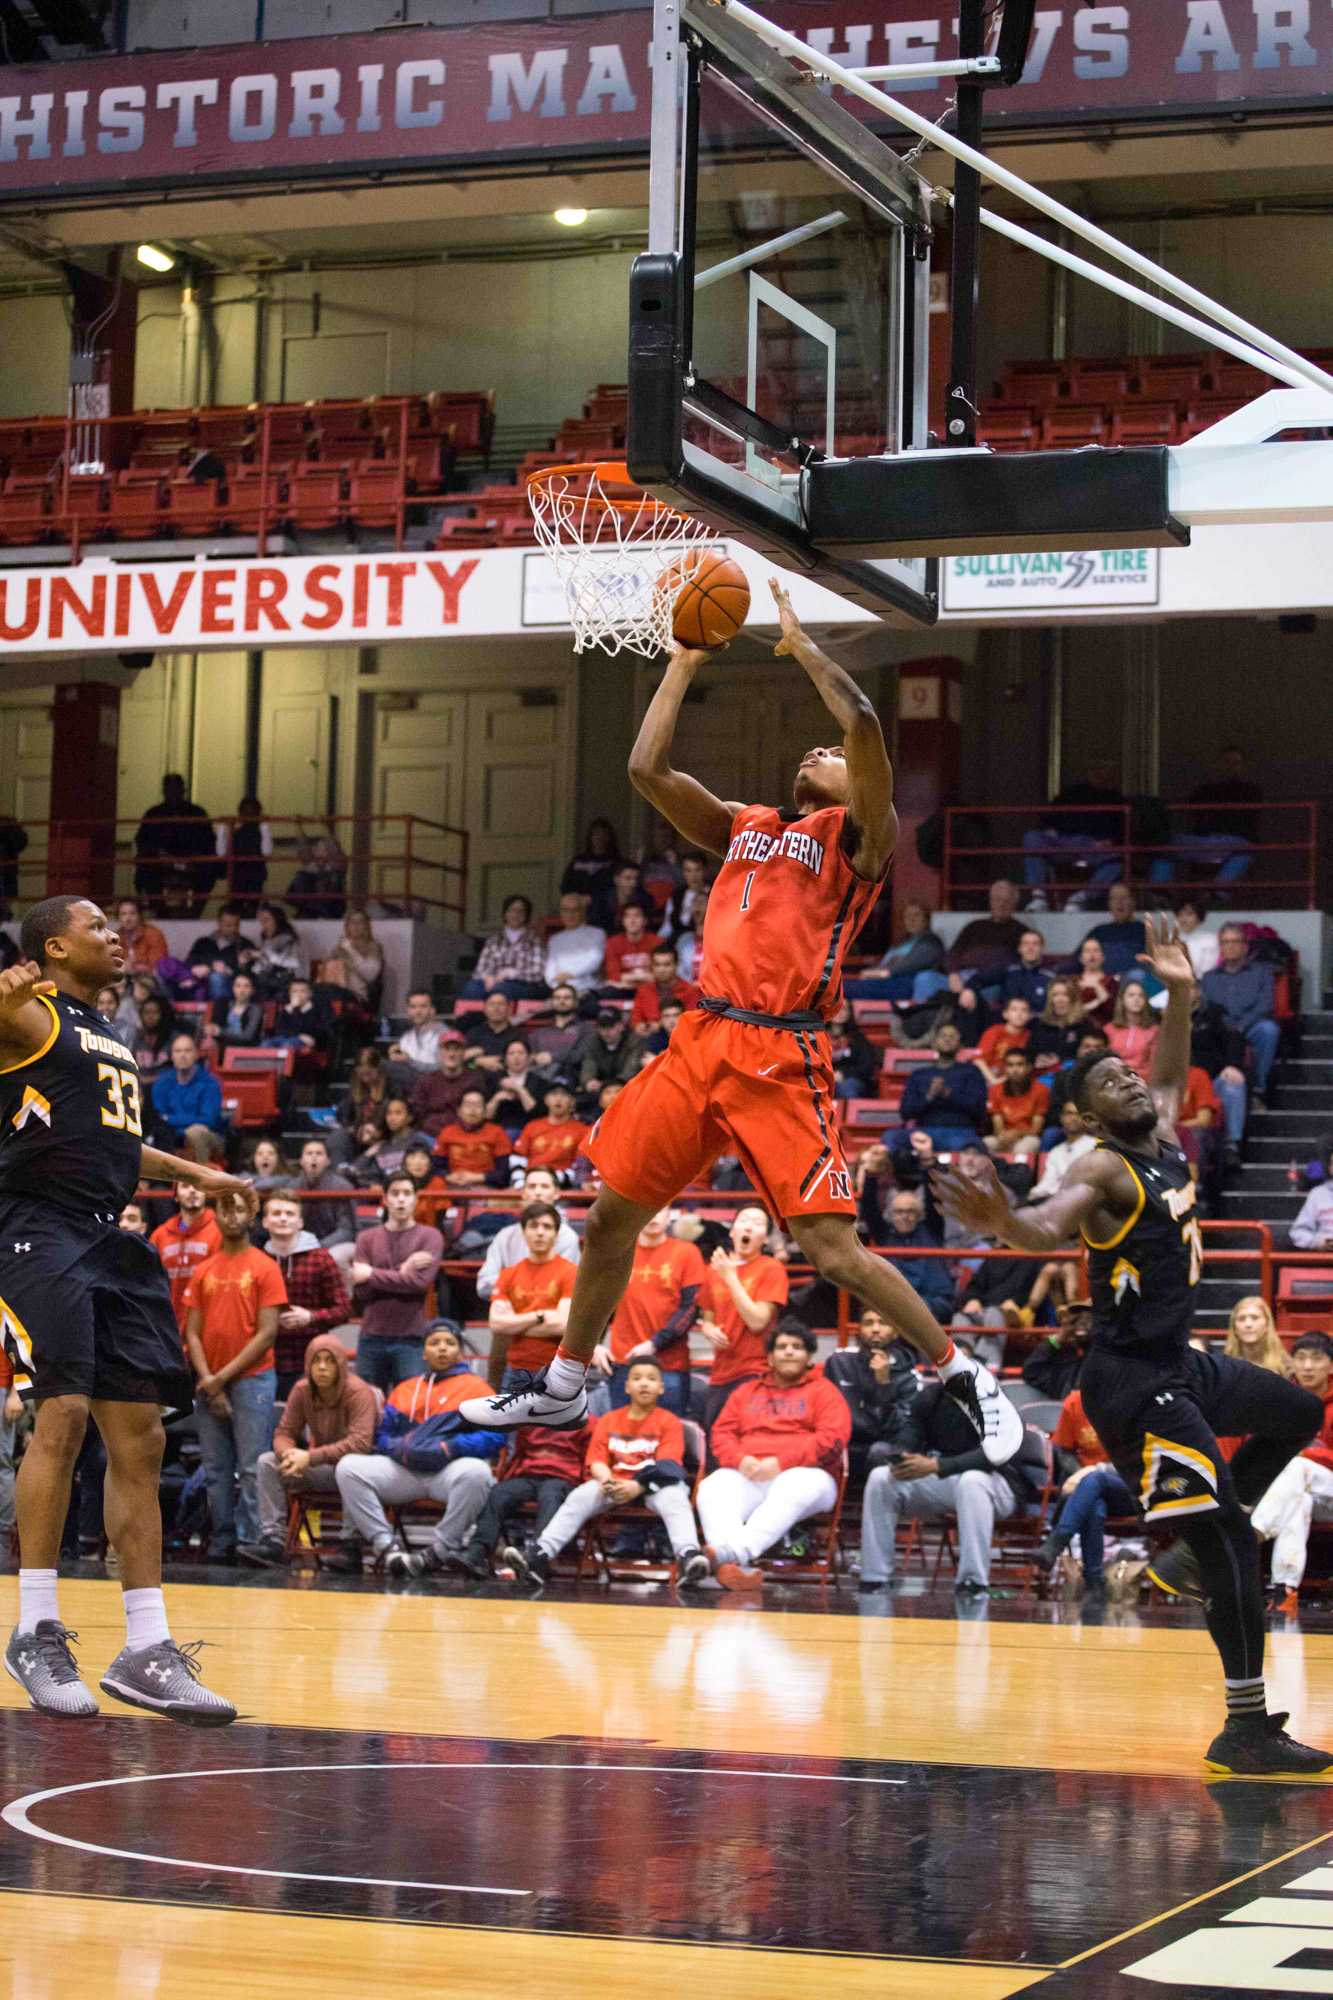 With+under+a+minute+to+play%2C+freshman+Shawn+Occeus+%281%29+draws+a+foul+during+a+layup+attempt+after+a+full-court+breakaway.